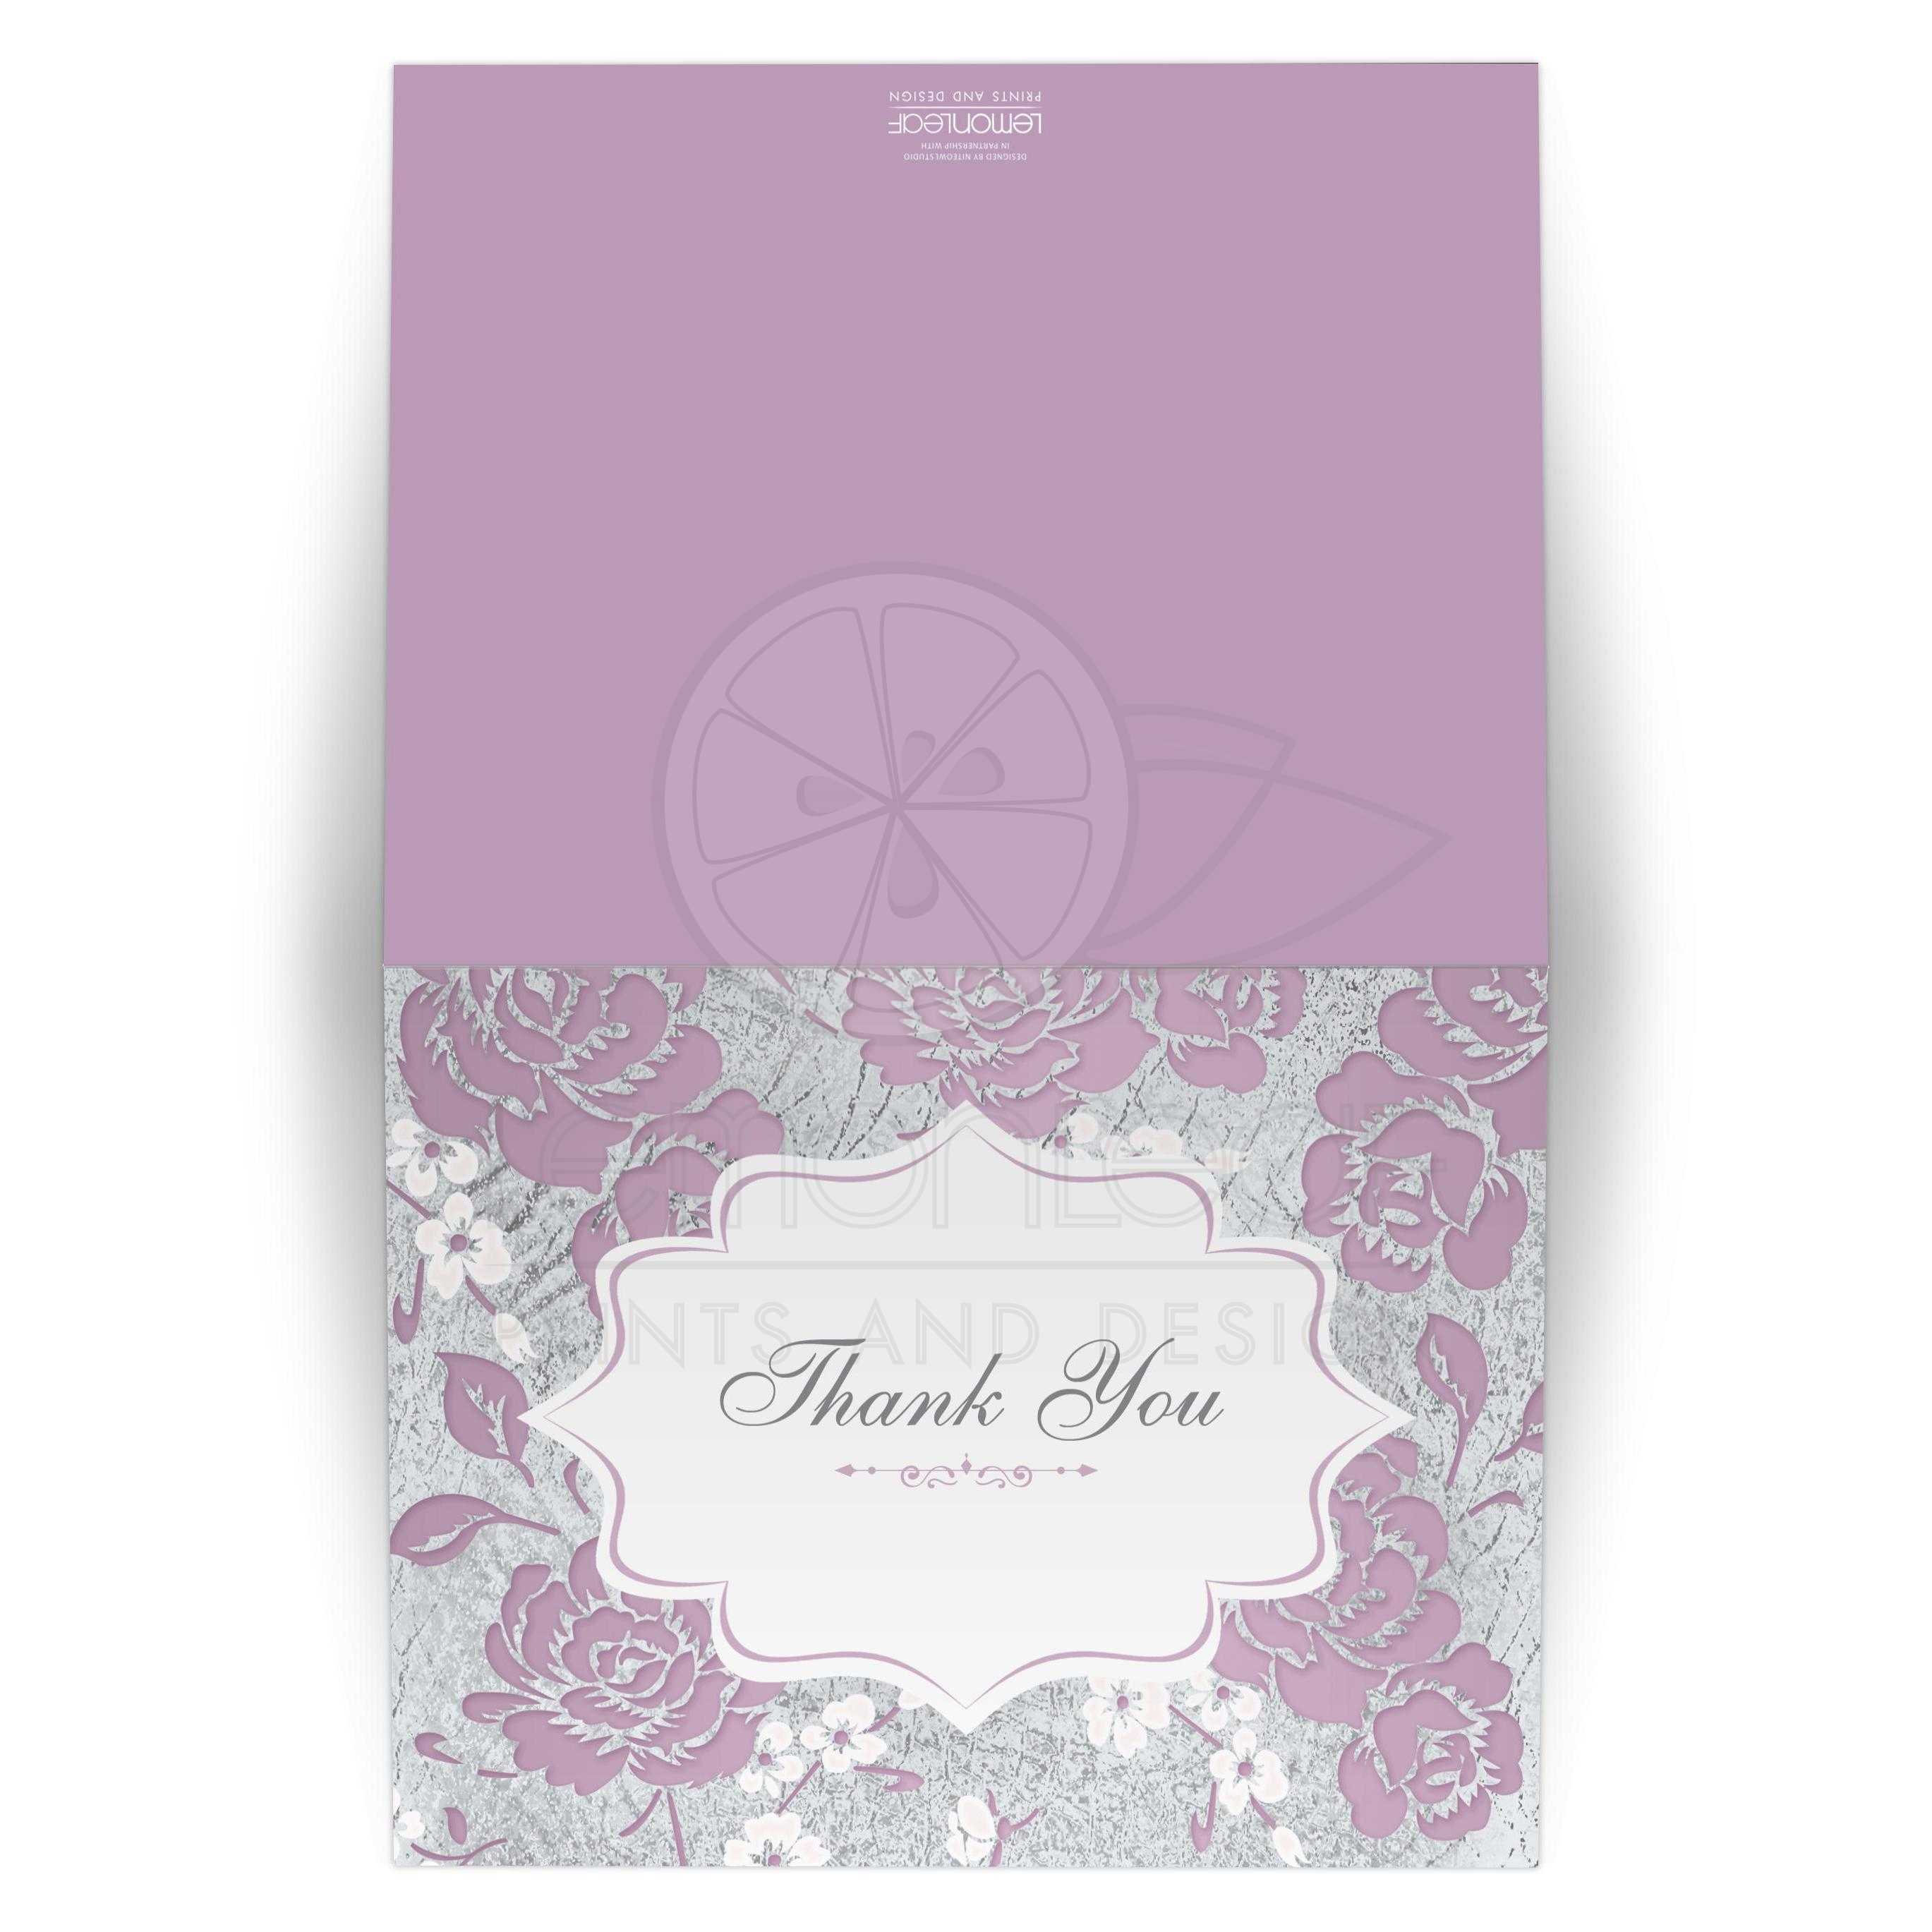 Lilac Purple Silver Gray White Floral Thank You Card Blank